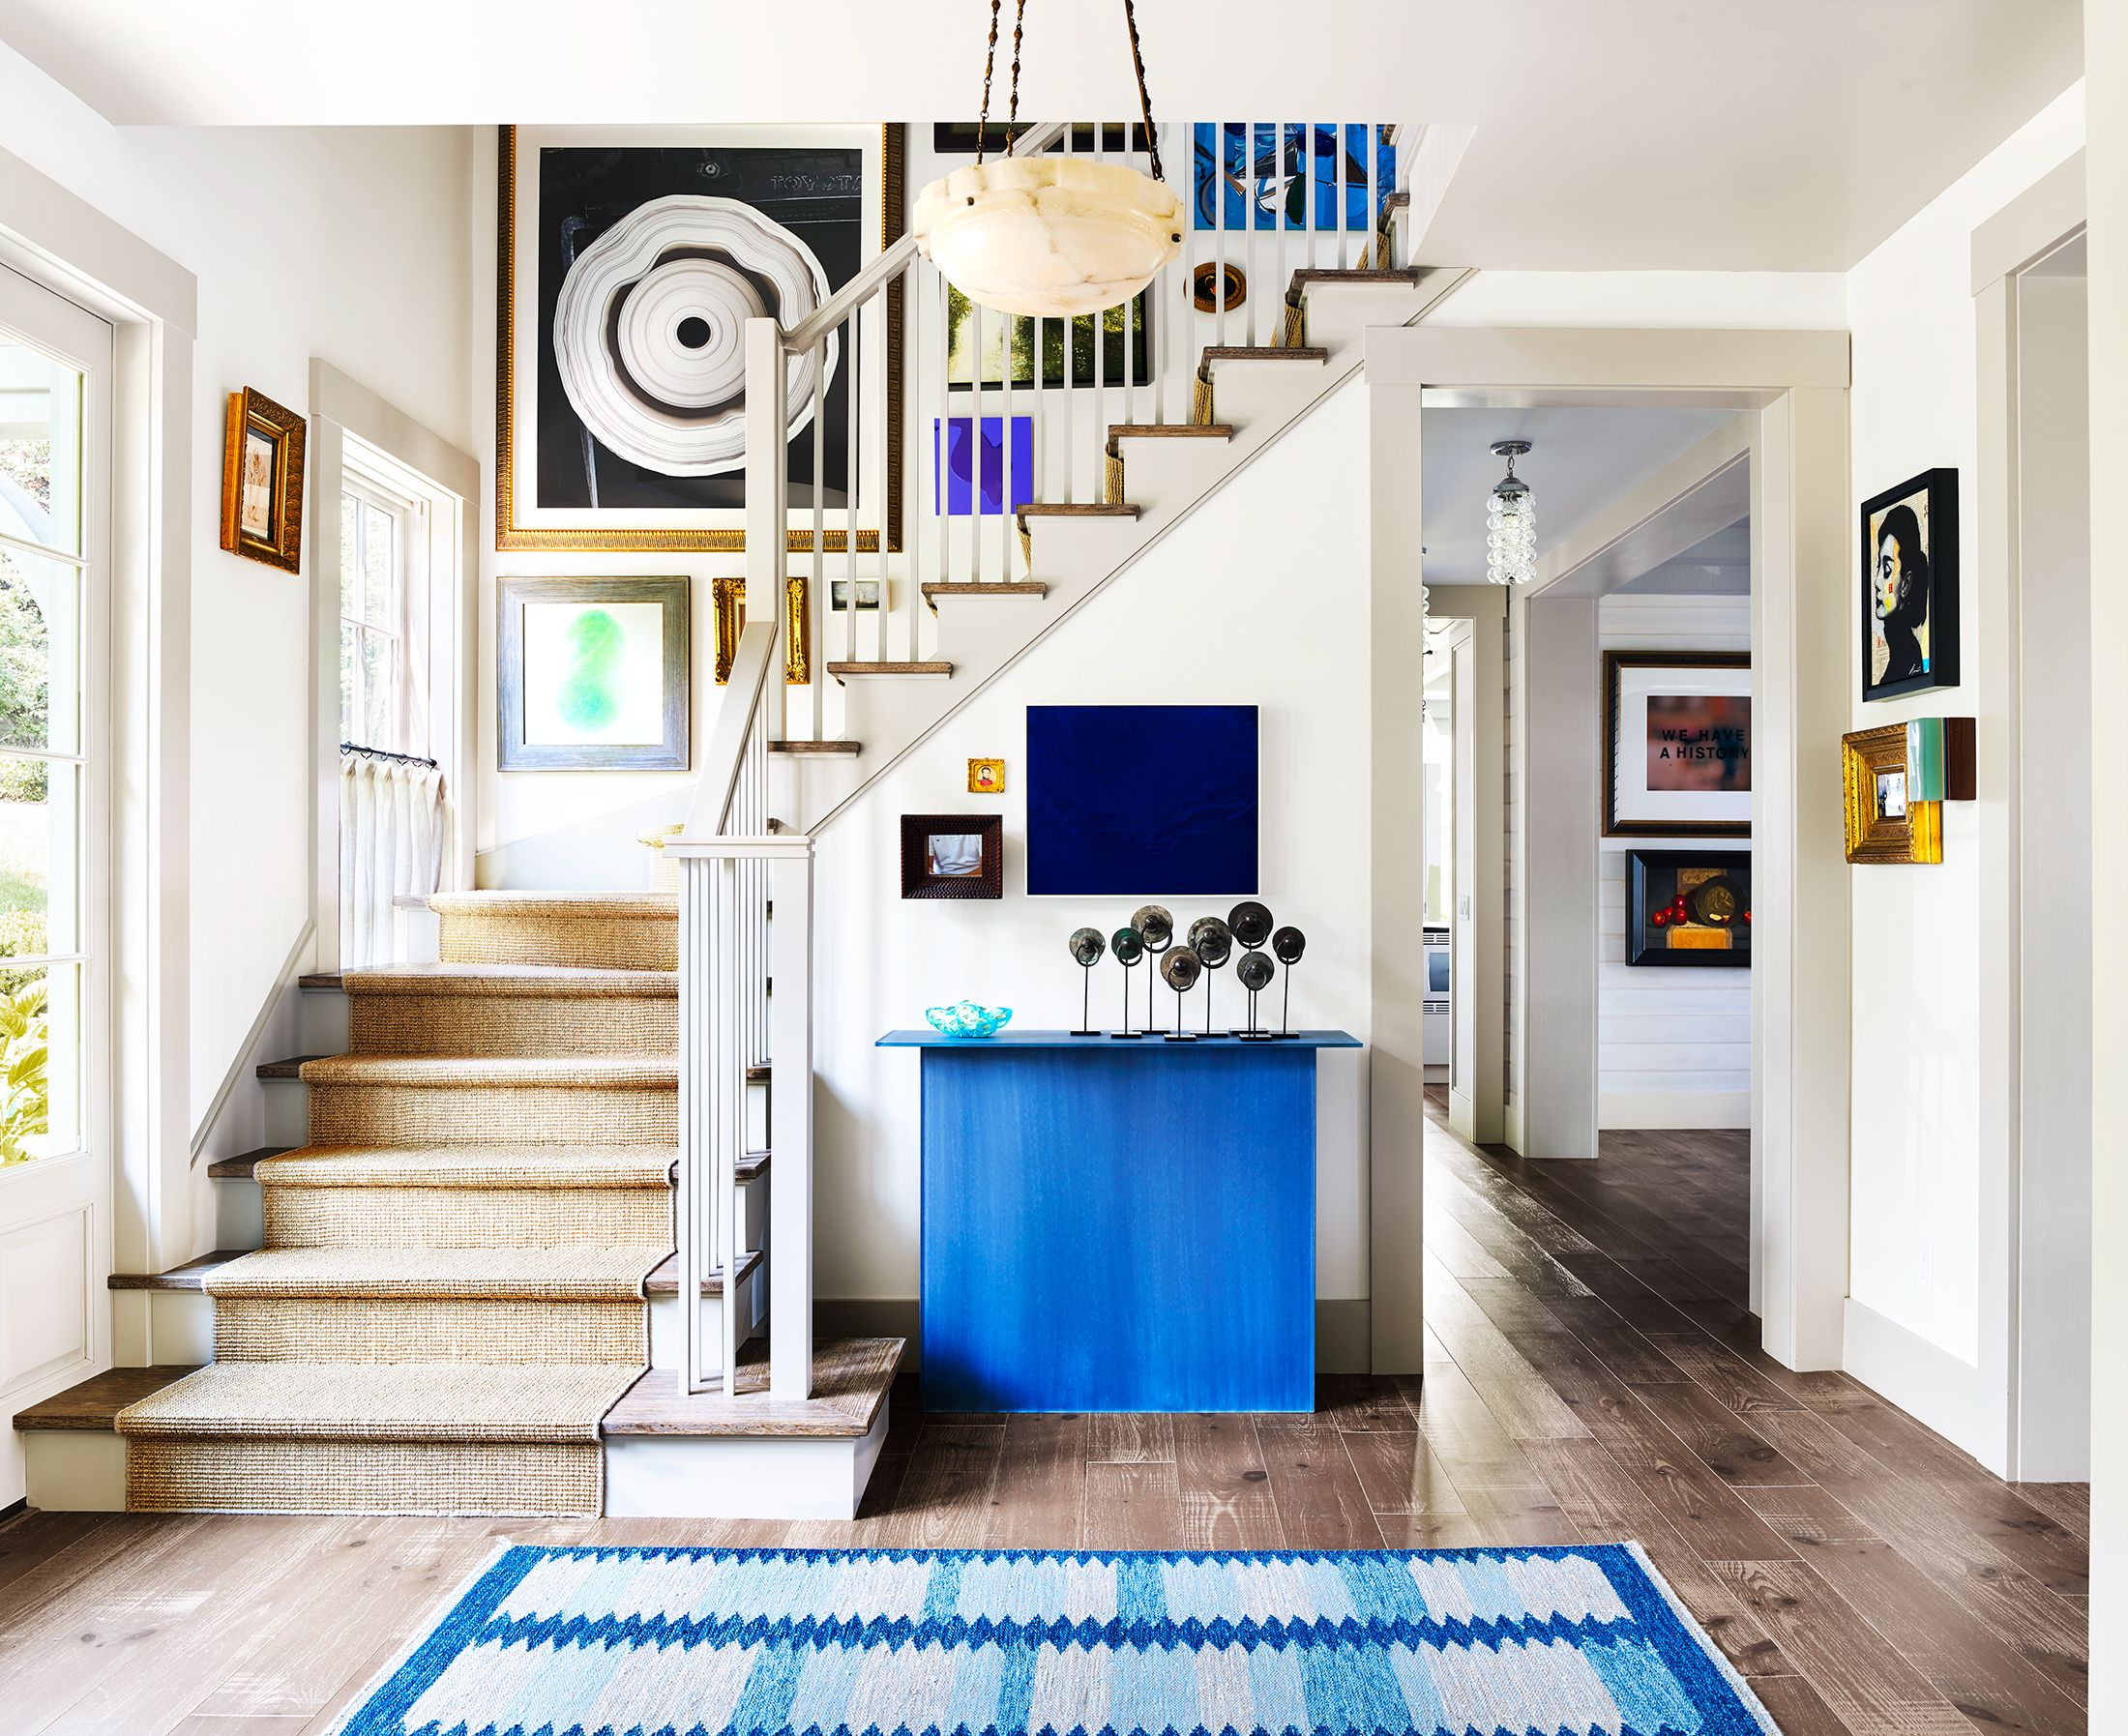 14 Best Wall Art Ideas For Every Room - Cool Wall Decor And Prints